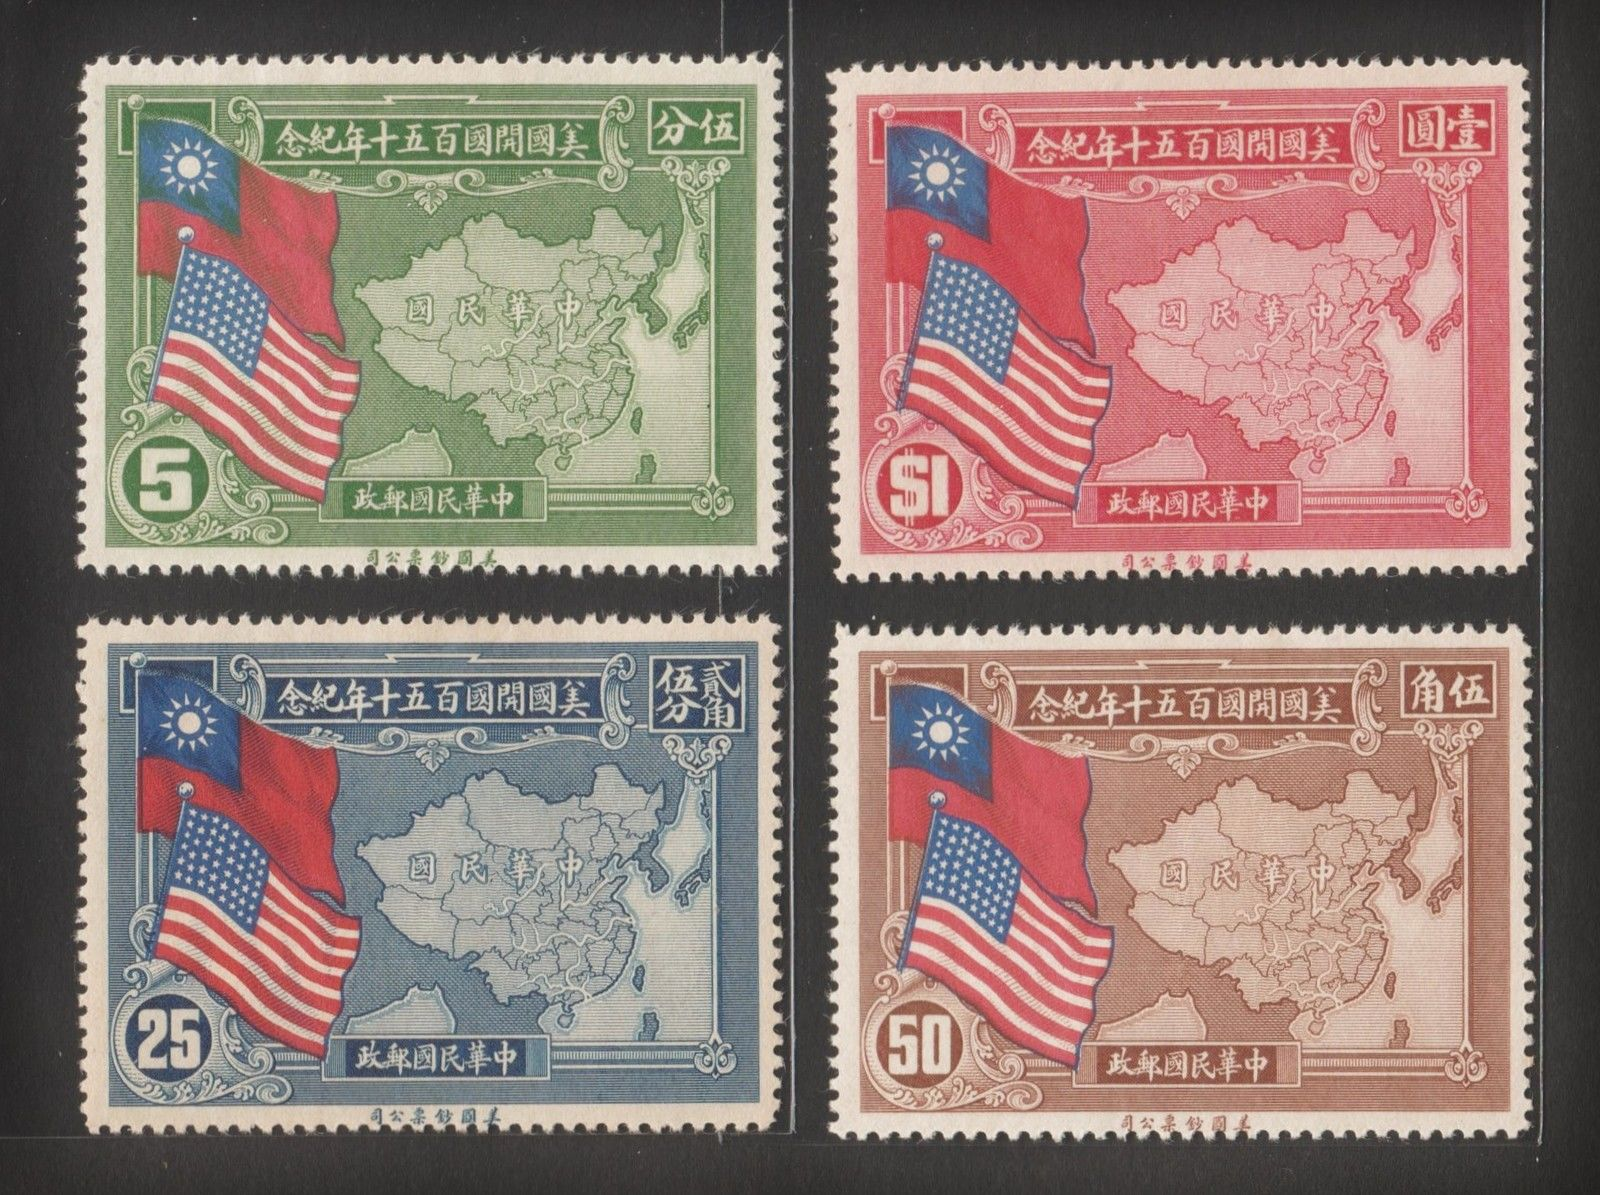 Stamps of China: U.S. Constitution (1939)